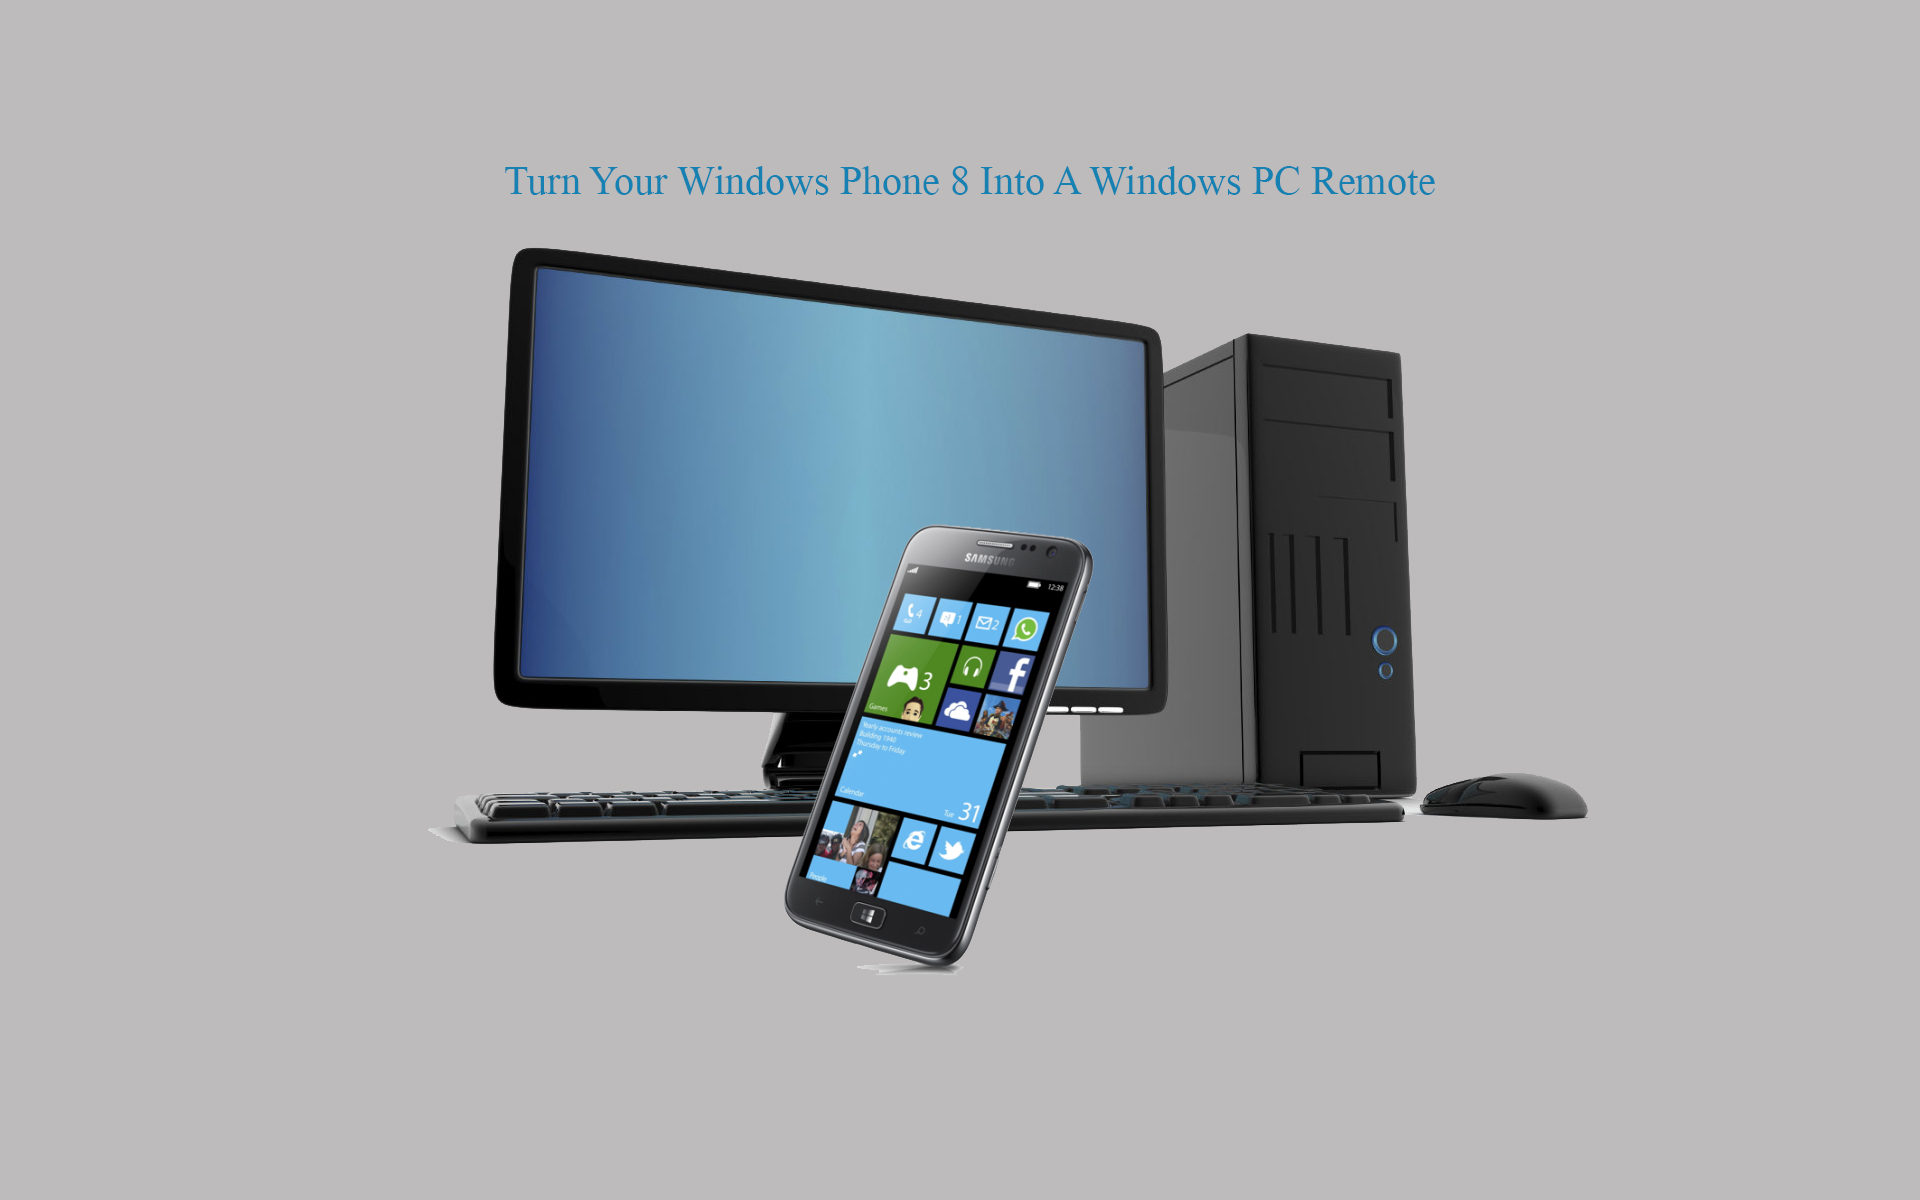 Turn Your Windows Phone 8 Into A Windows PC Remote thetechhacker